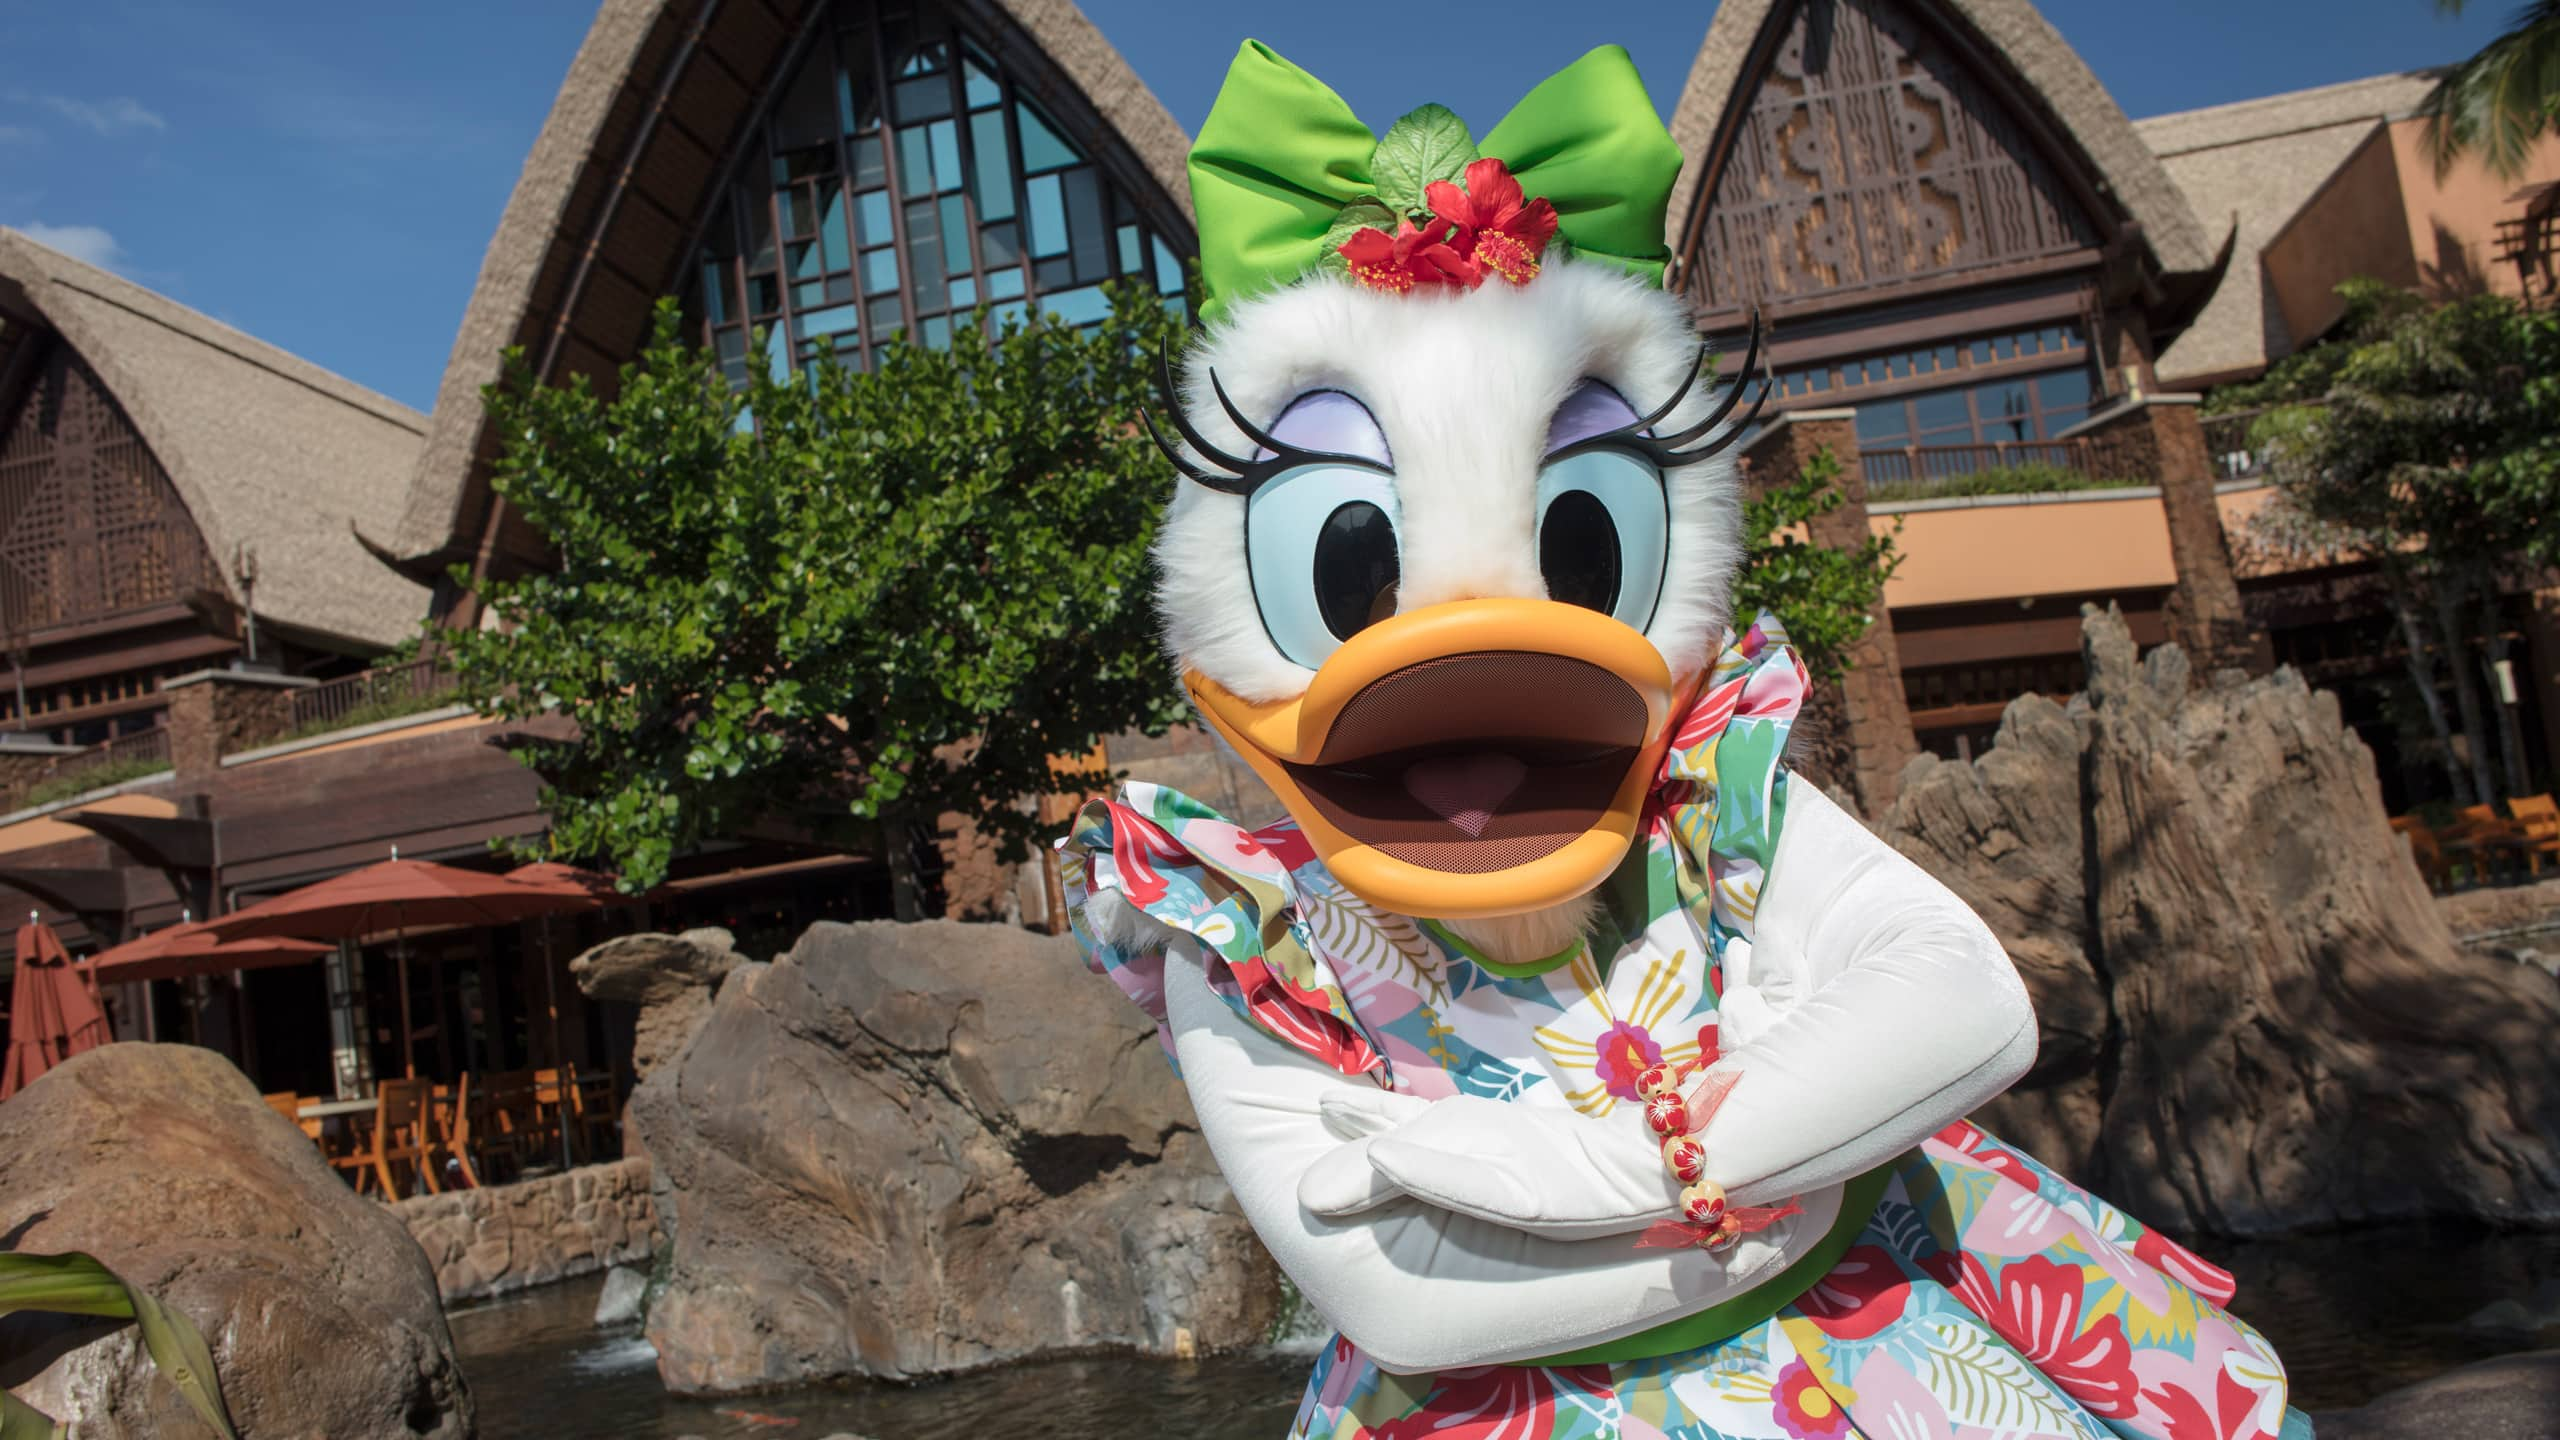 Daisy Duck poses with her arms crossed and wearing a Hawaiian print dress and a bow on her head, in front of the main entrance to Aulani Resort